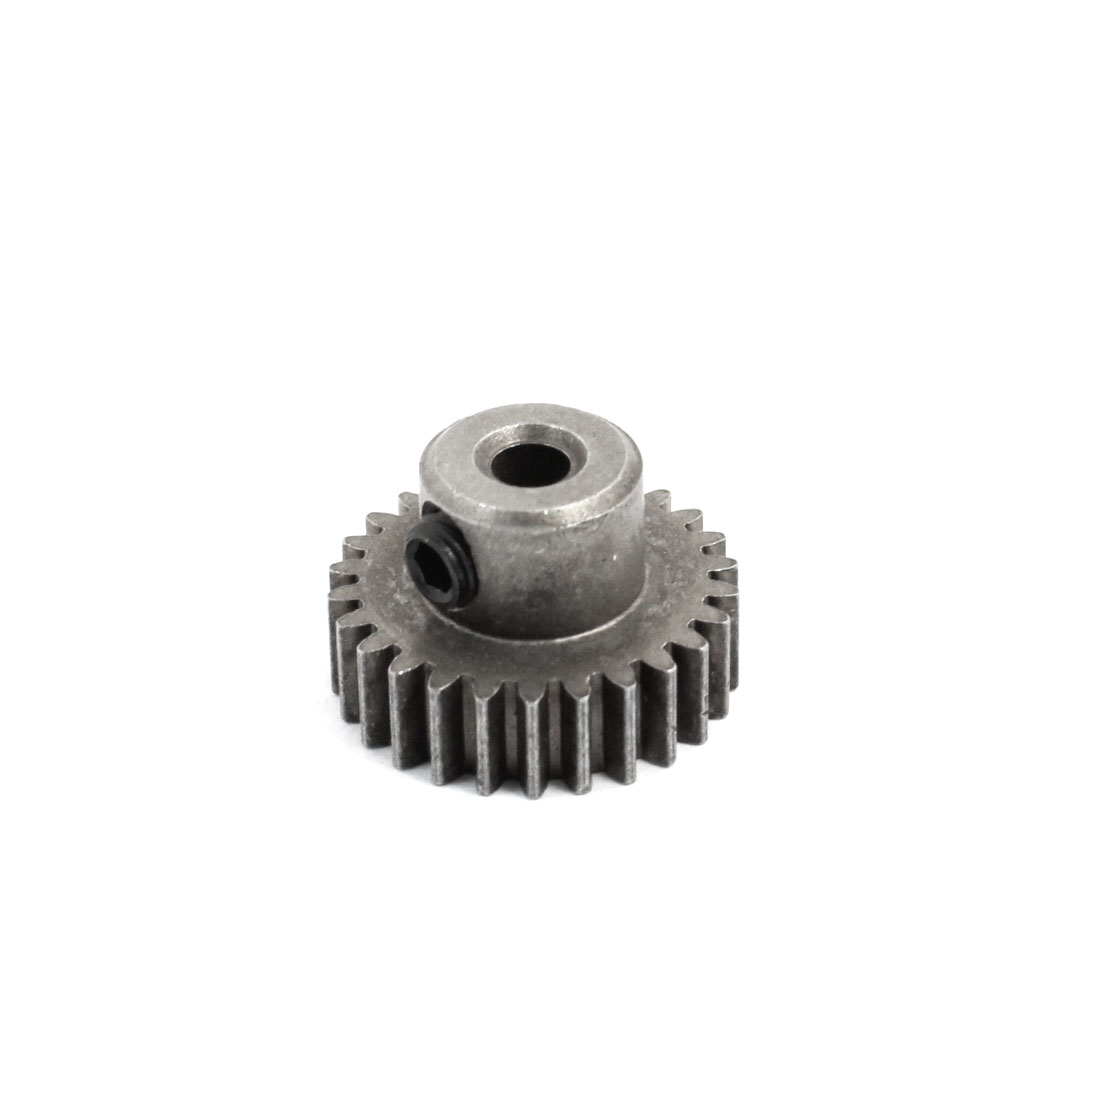 RC Electric Car Upgrade Parts 1/10 Steel Pinion Gear 26T 26 Teeth 11176